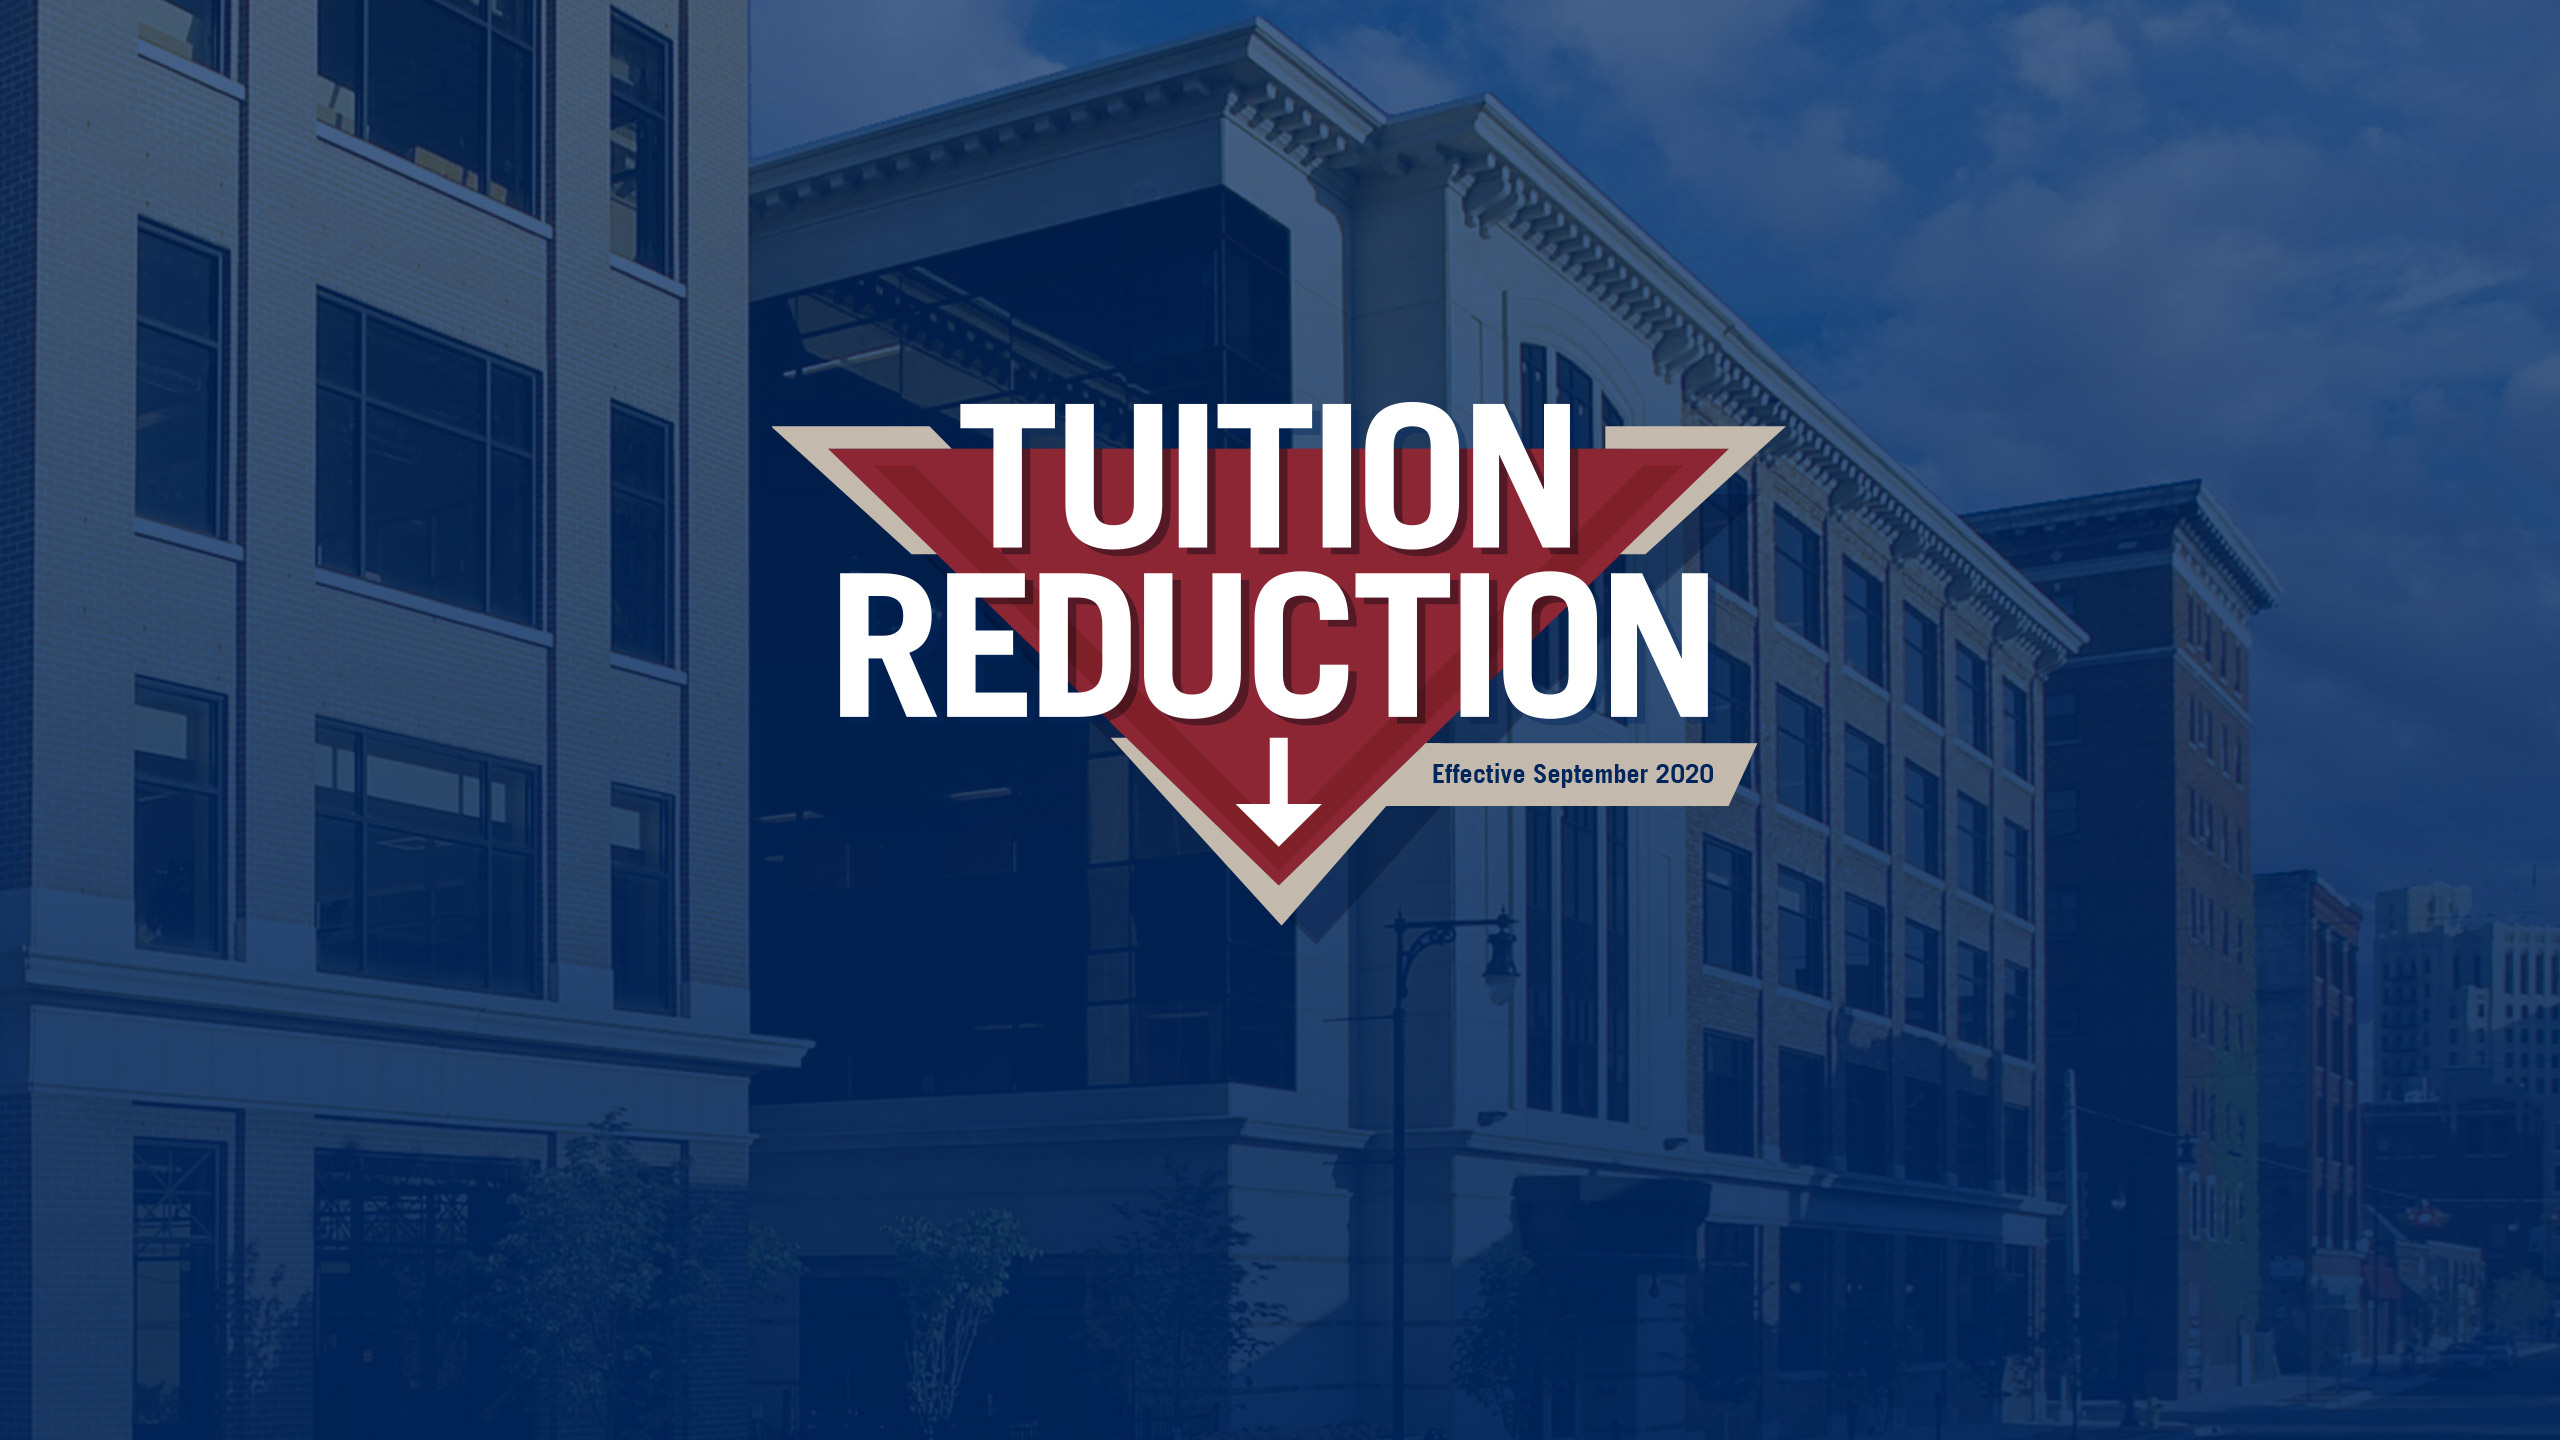 Tuition Reduction